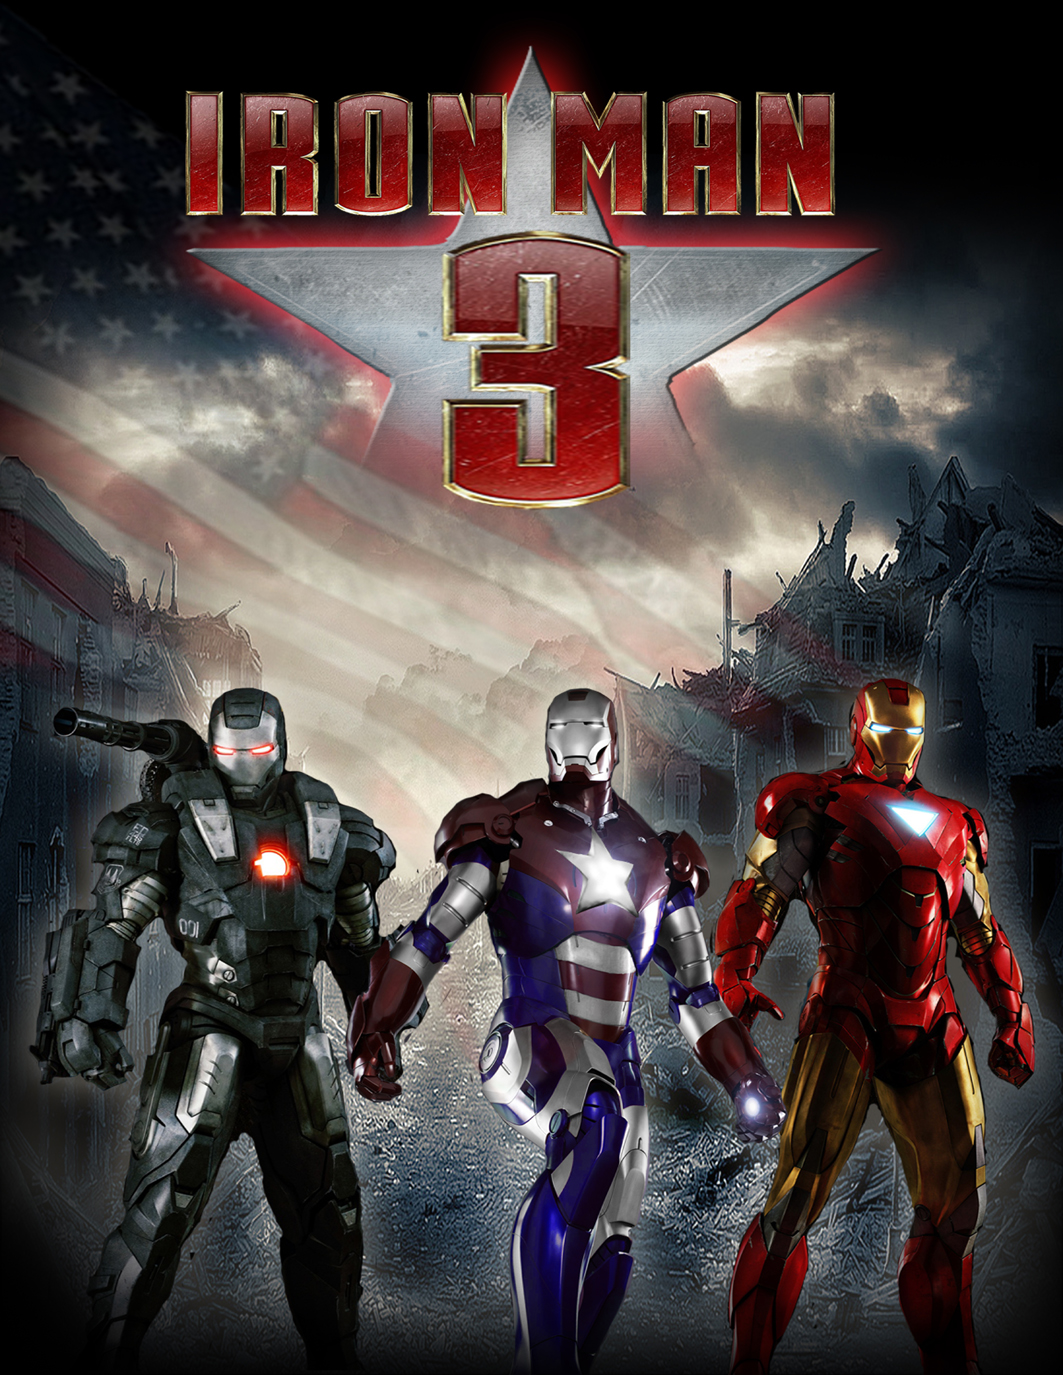 Ver Iron Man 3 (Ironman 3) Online